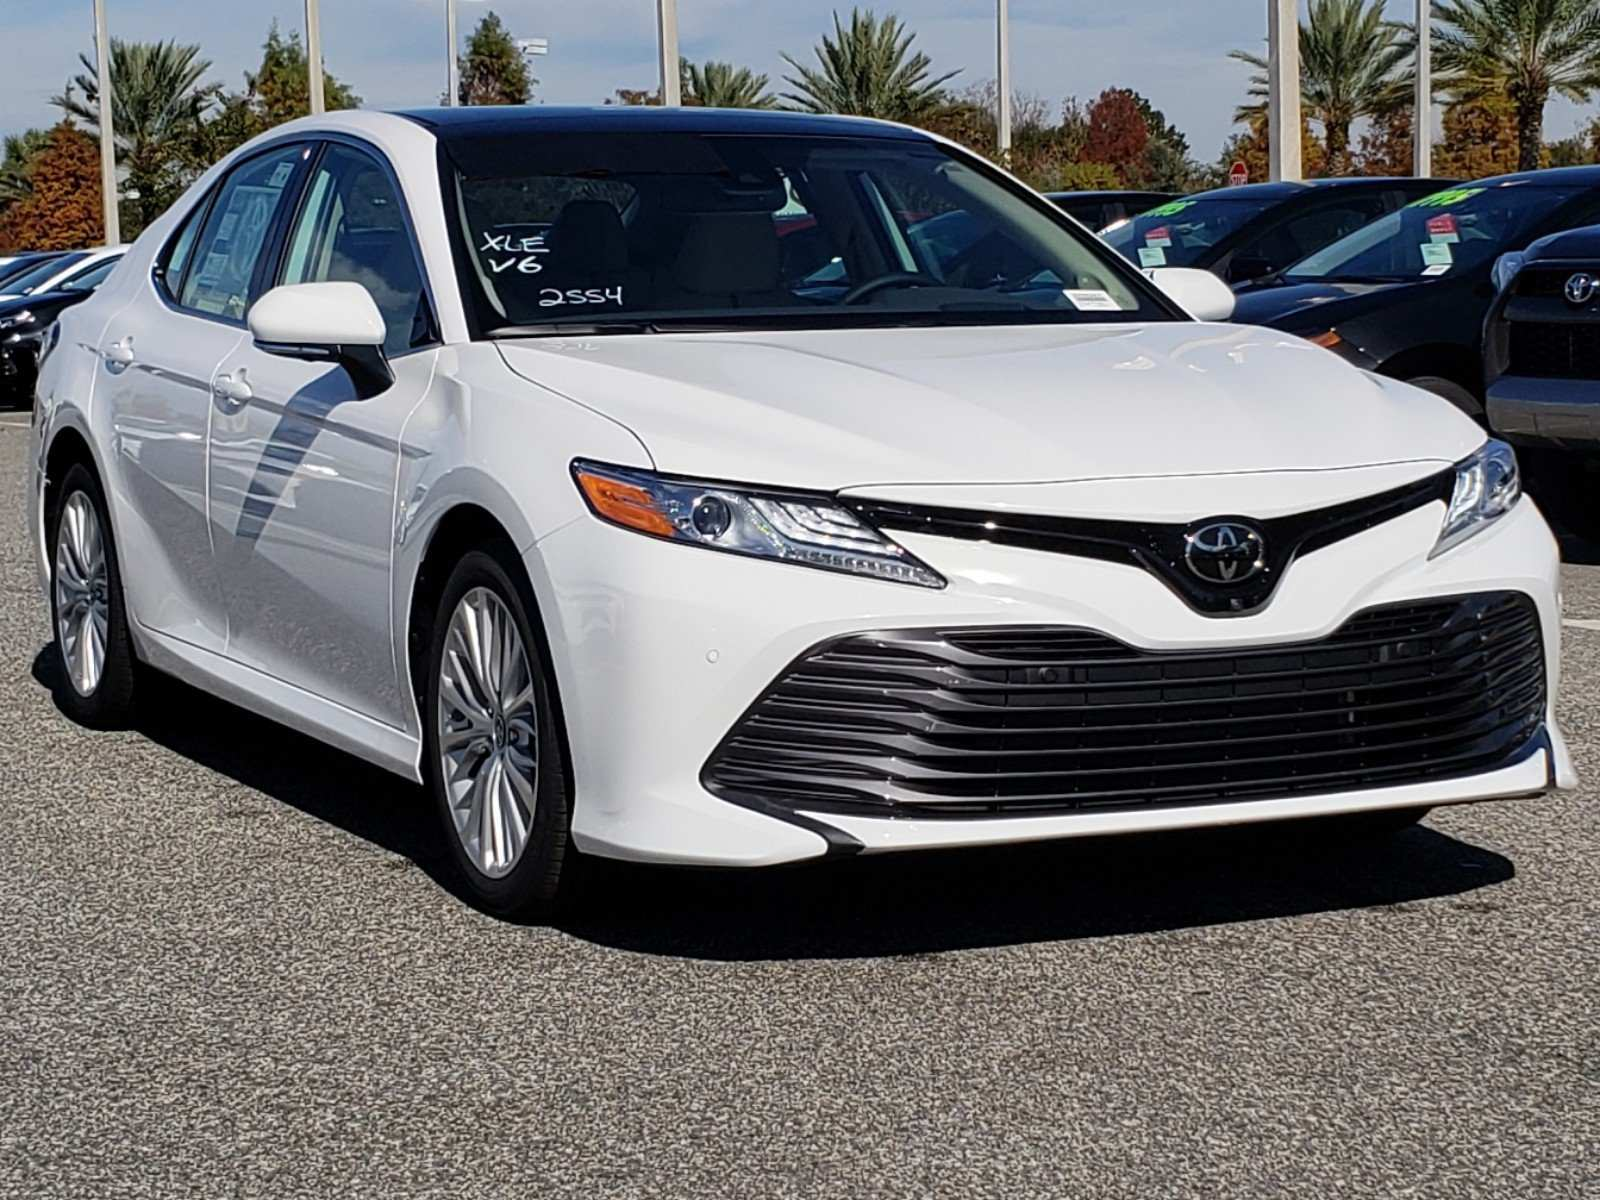 31 Concept of Toyota Xle 2019 Pricing for Toyota Xle 2019